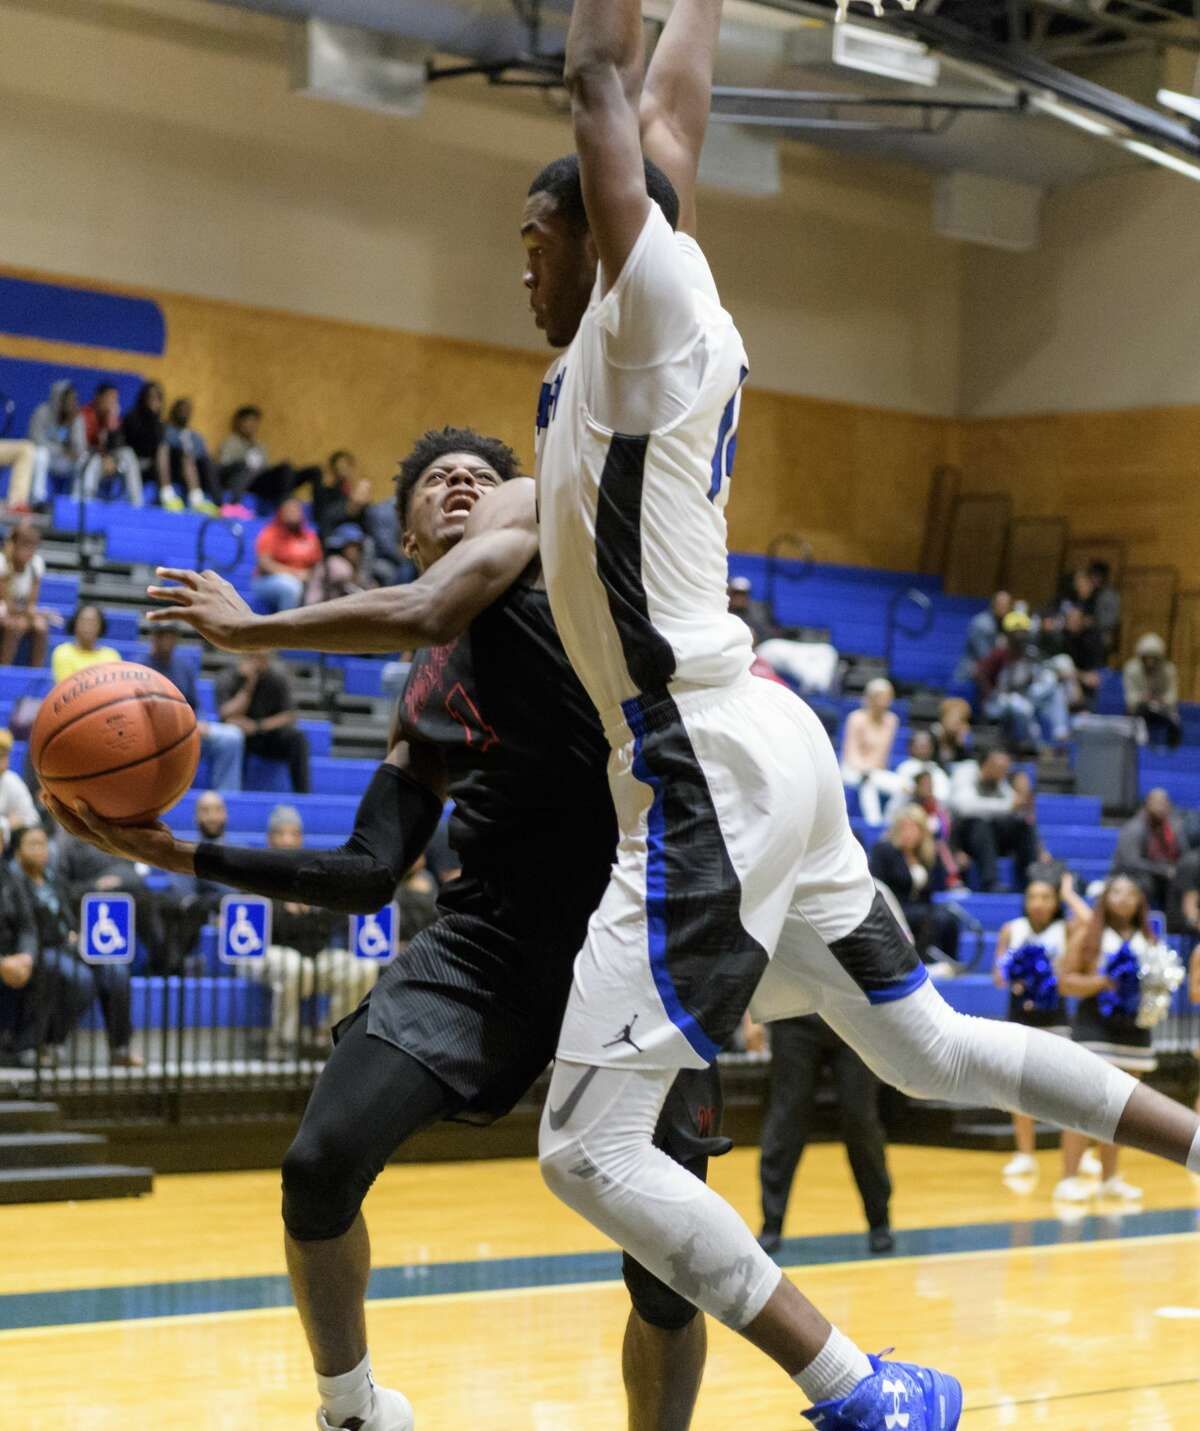 Darius McNeill (1) of the Westfield Mustangs is fouled in the second half by Anthony Nash (14) of the Dekaney Wildcats in a high school basketball game on Friday, January 20, 2017 at the Dekaney High School Gym in Houston Texas.